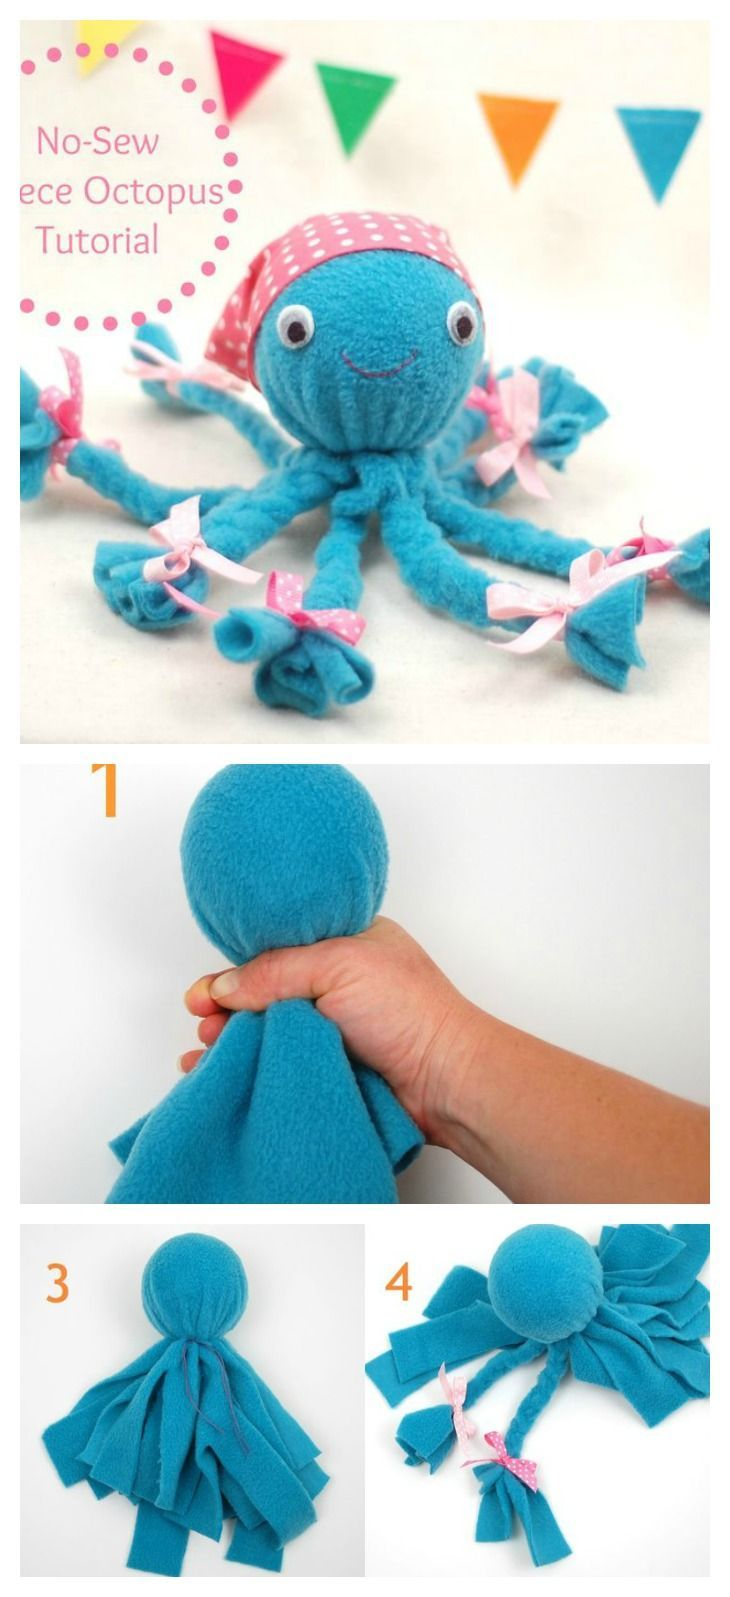 Crafts for young girls - Diy No Sew Fleece Octopus Craft